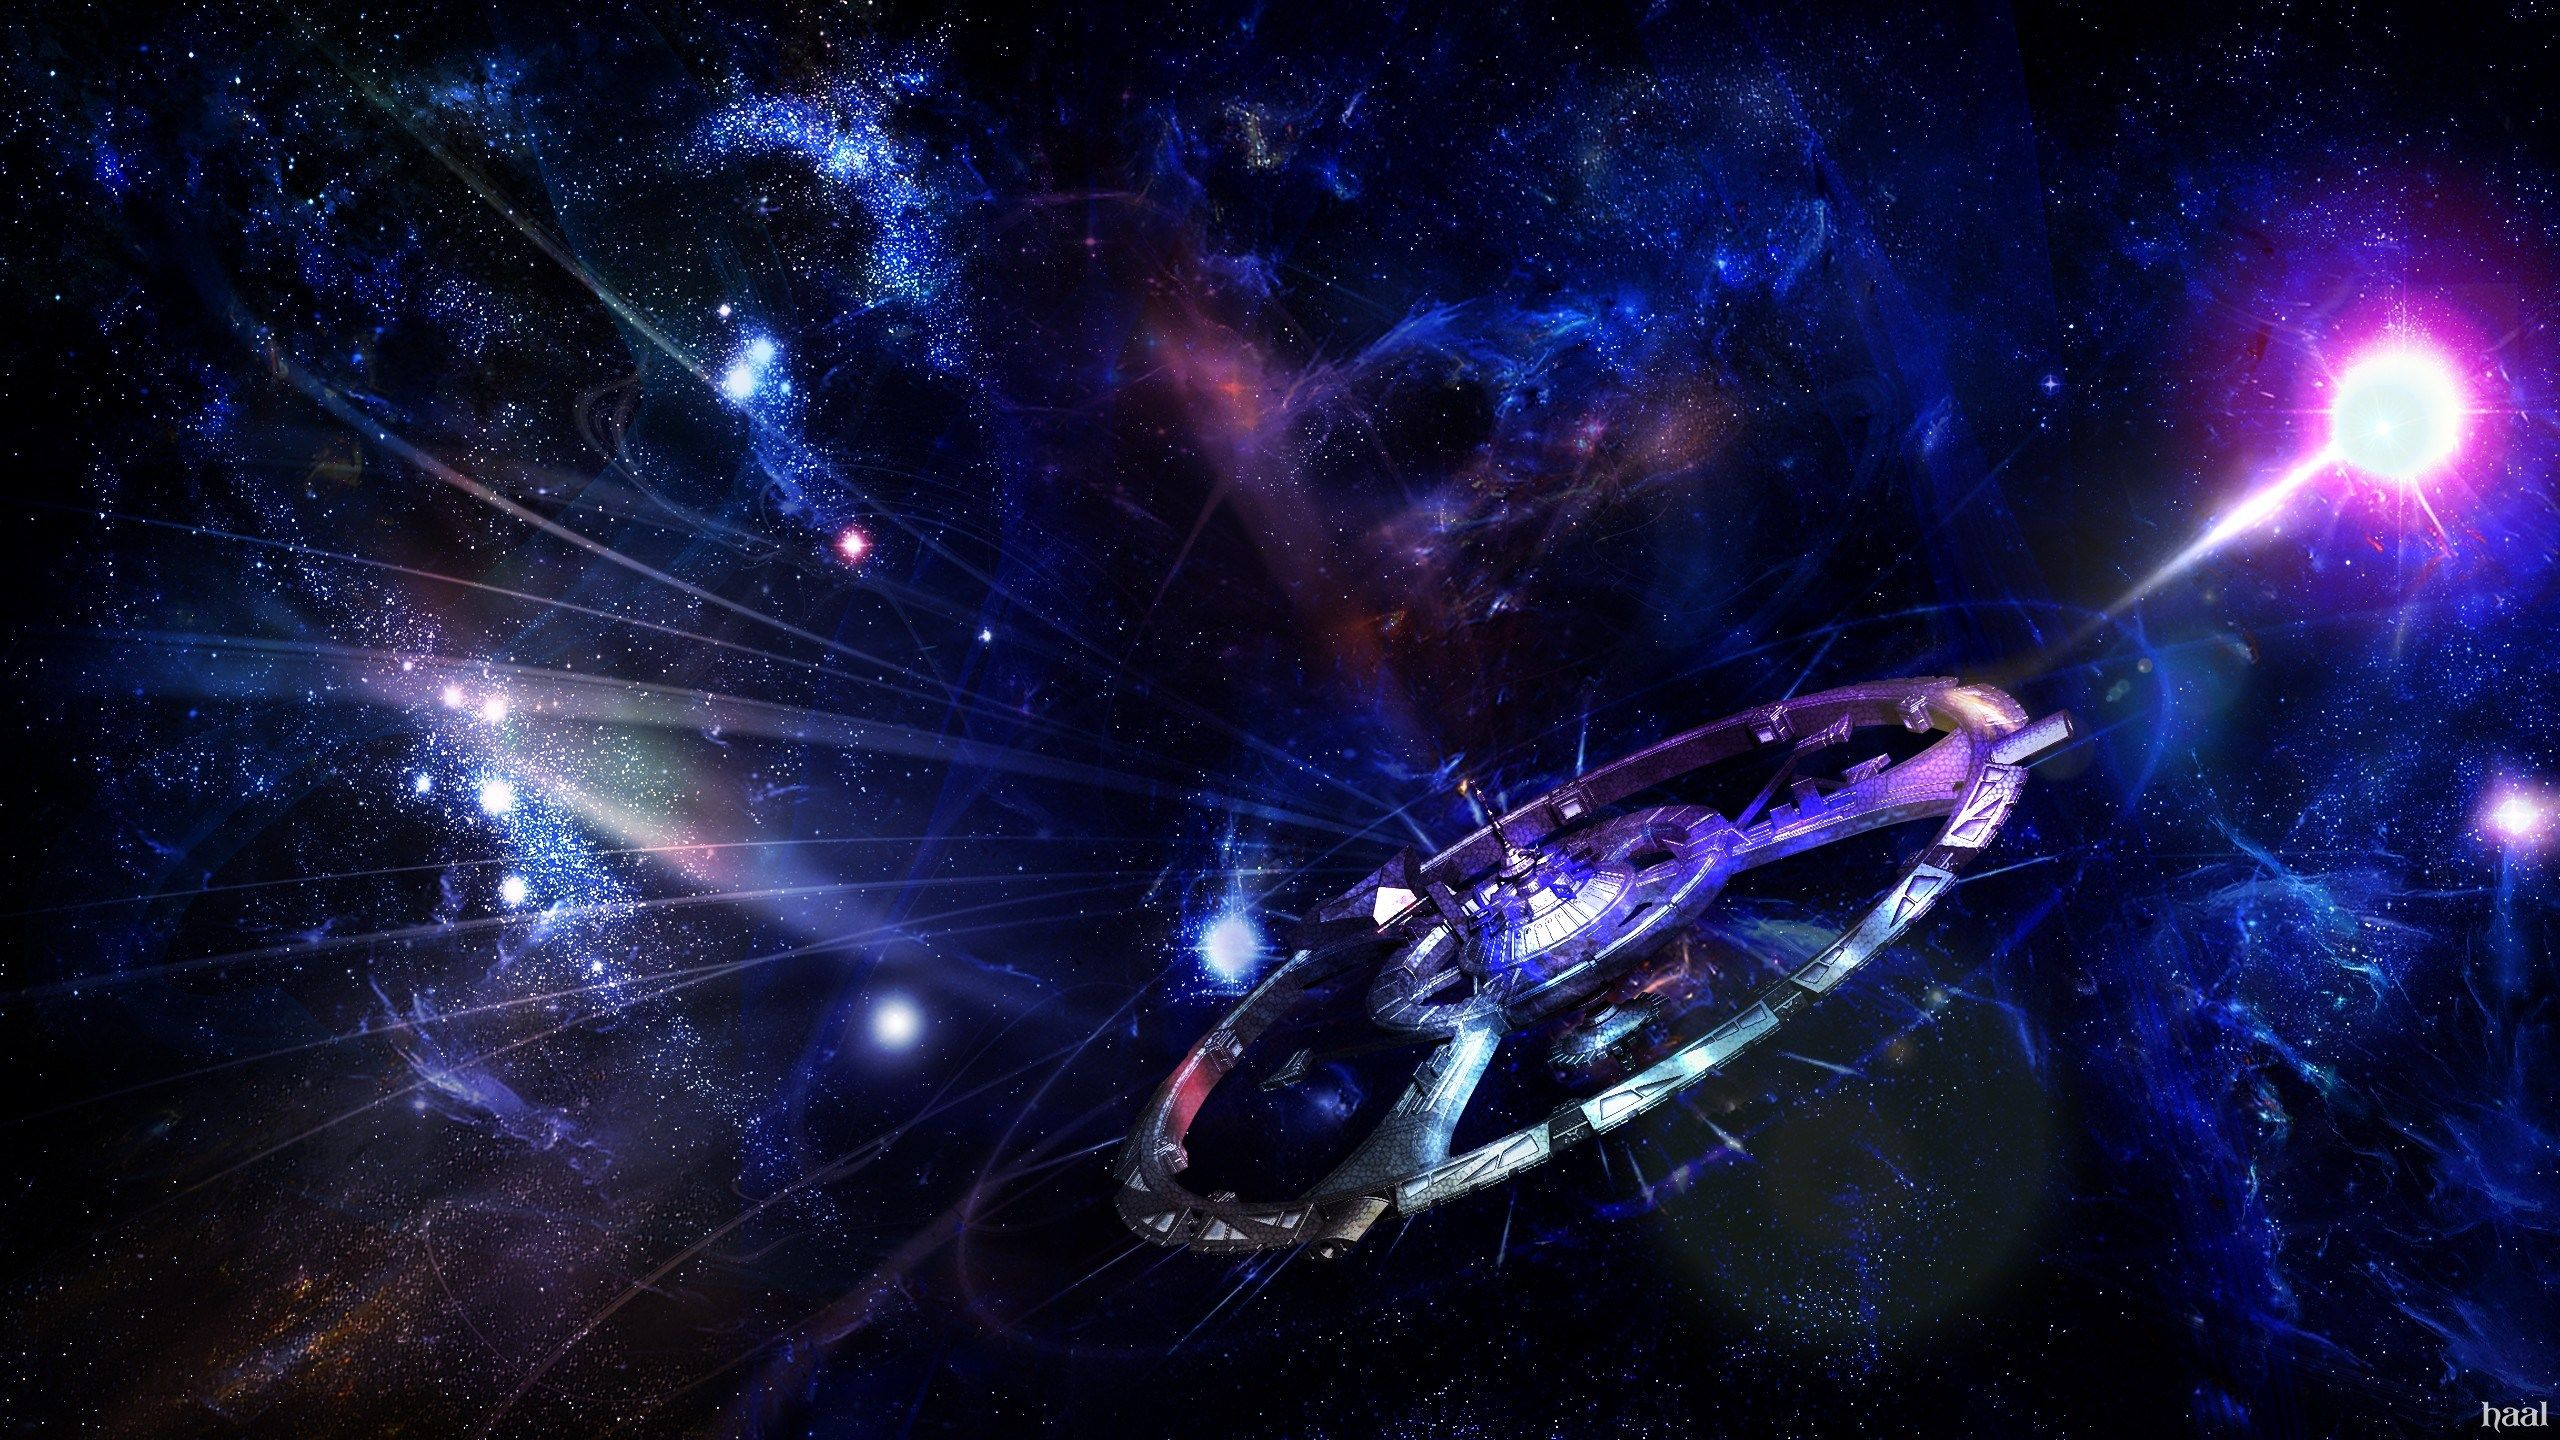 2560x1440 Spaceship Science Fiction Illustration Star Images Widescreen Wallpaper